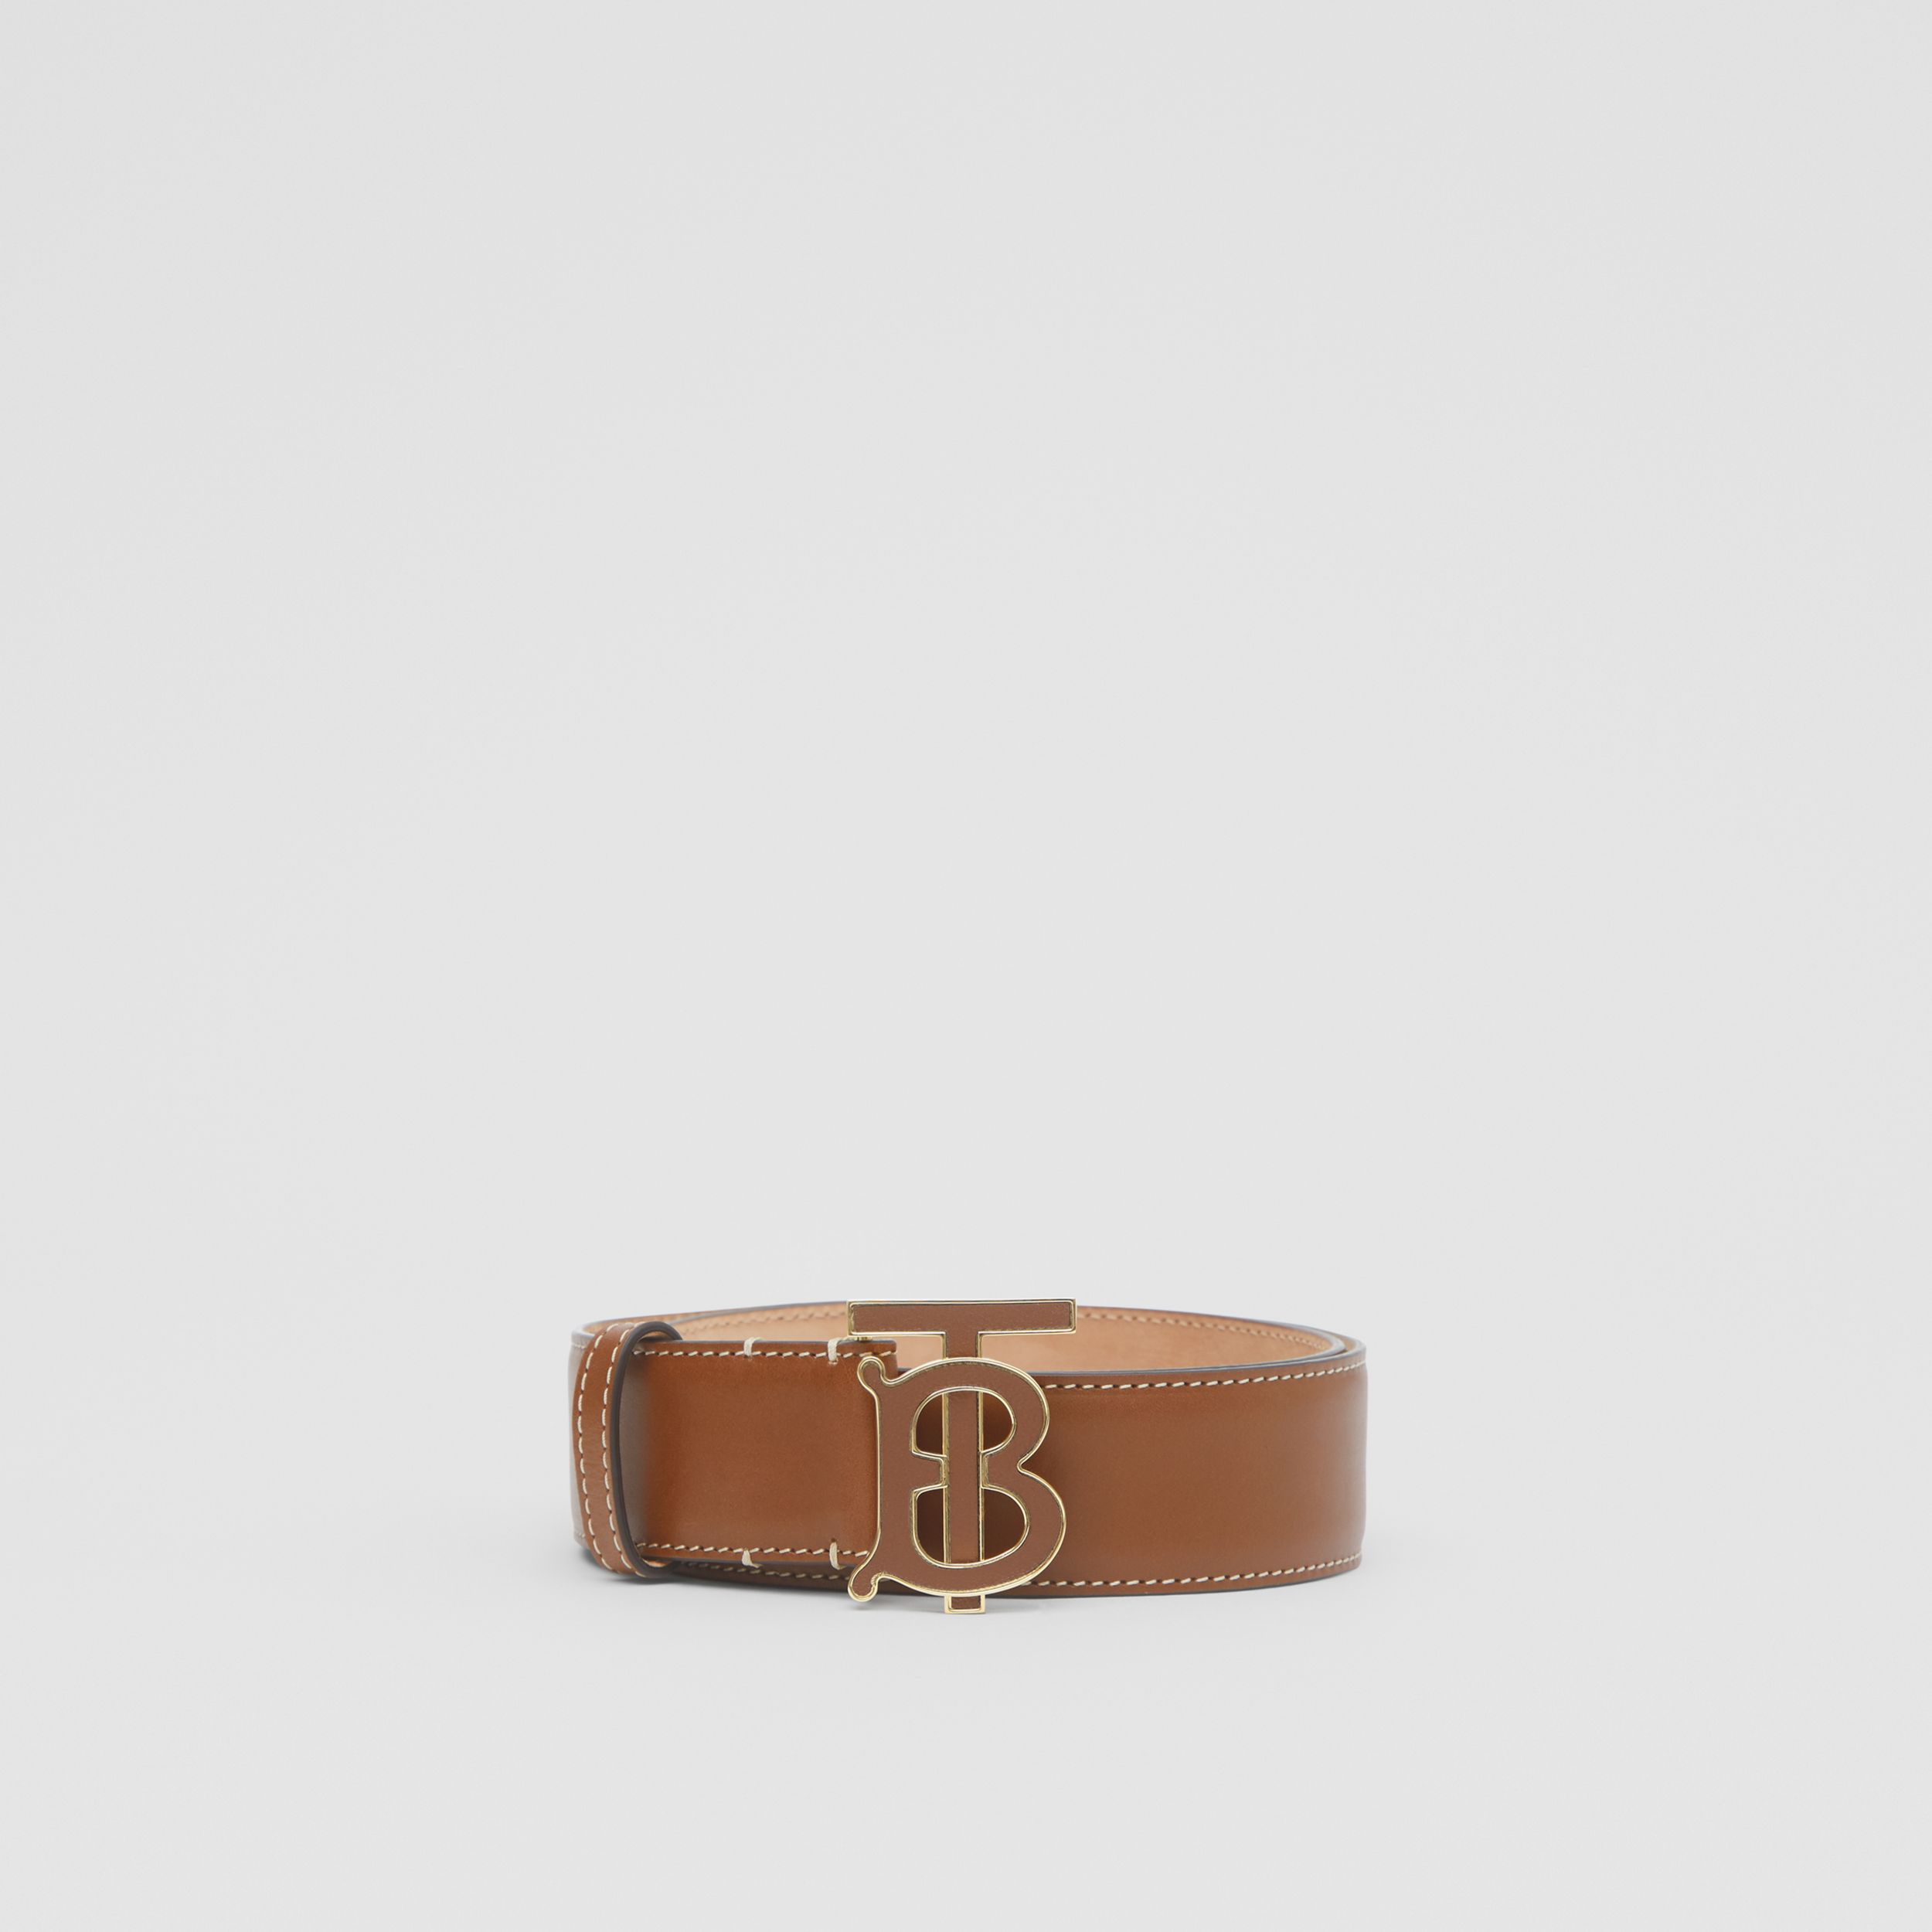 Monogram Motif Leather Belt in Tan | Burberry - 4